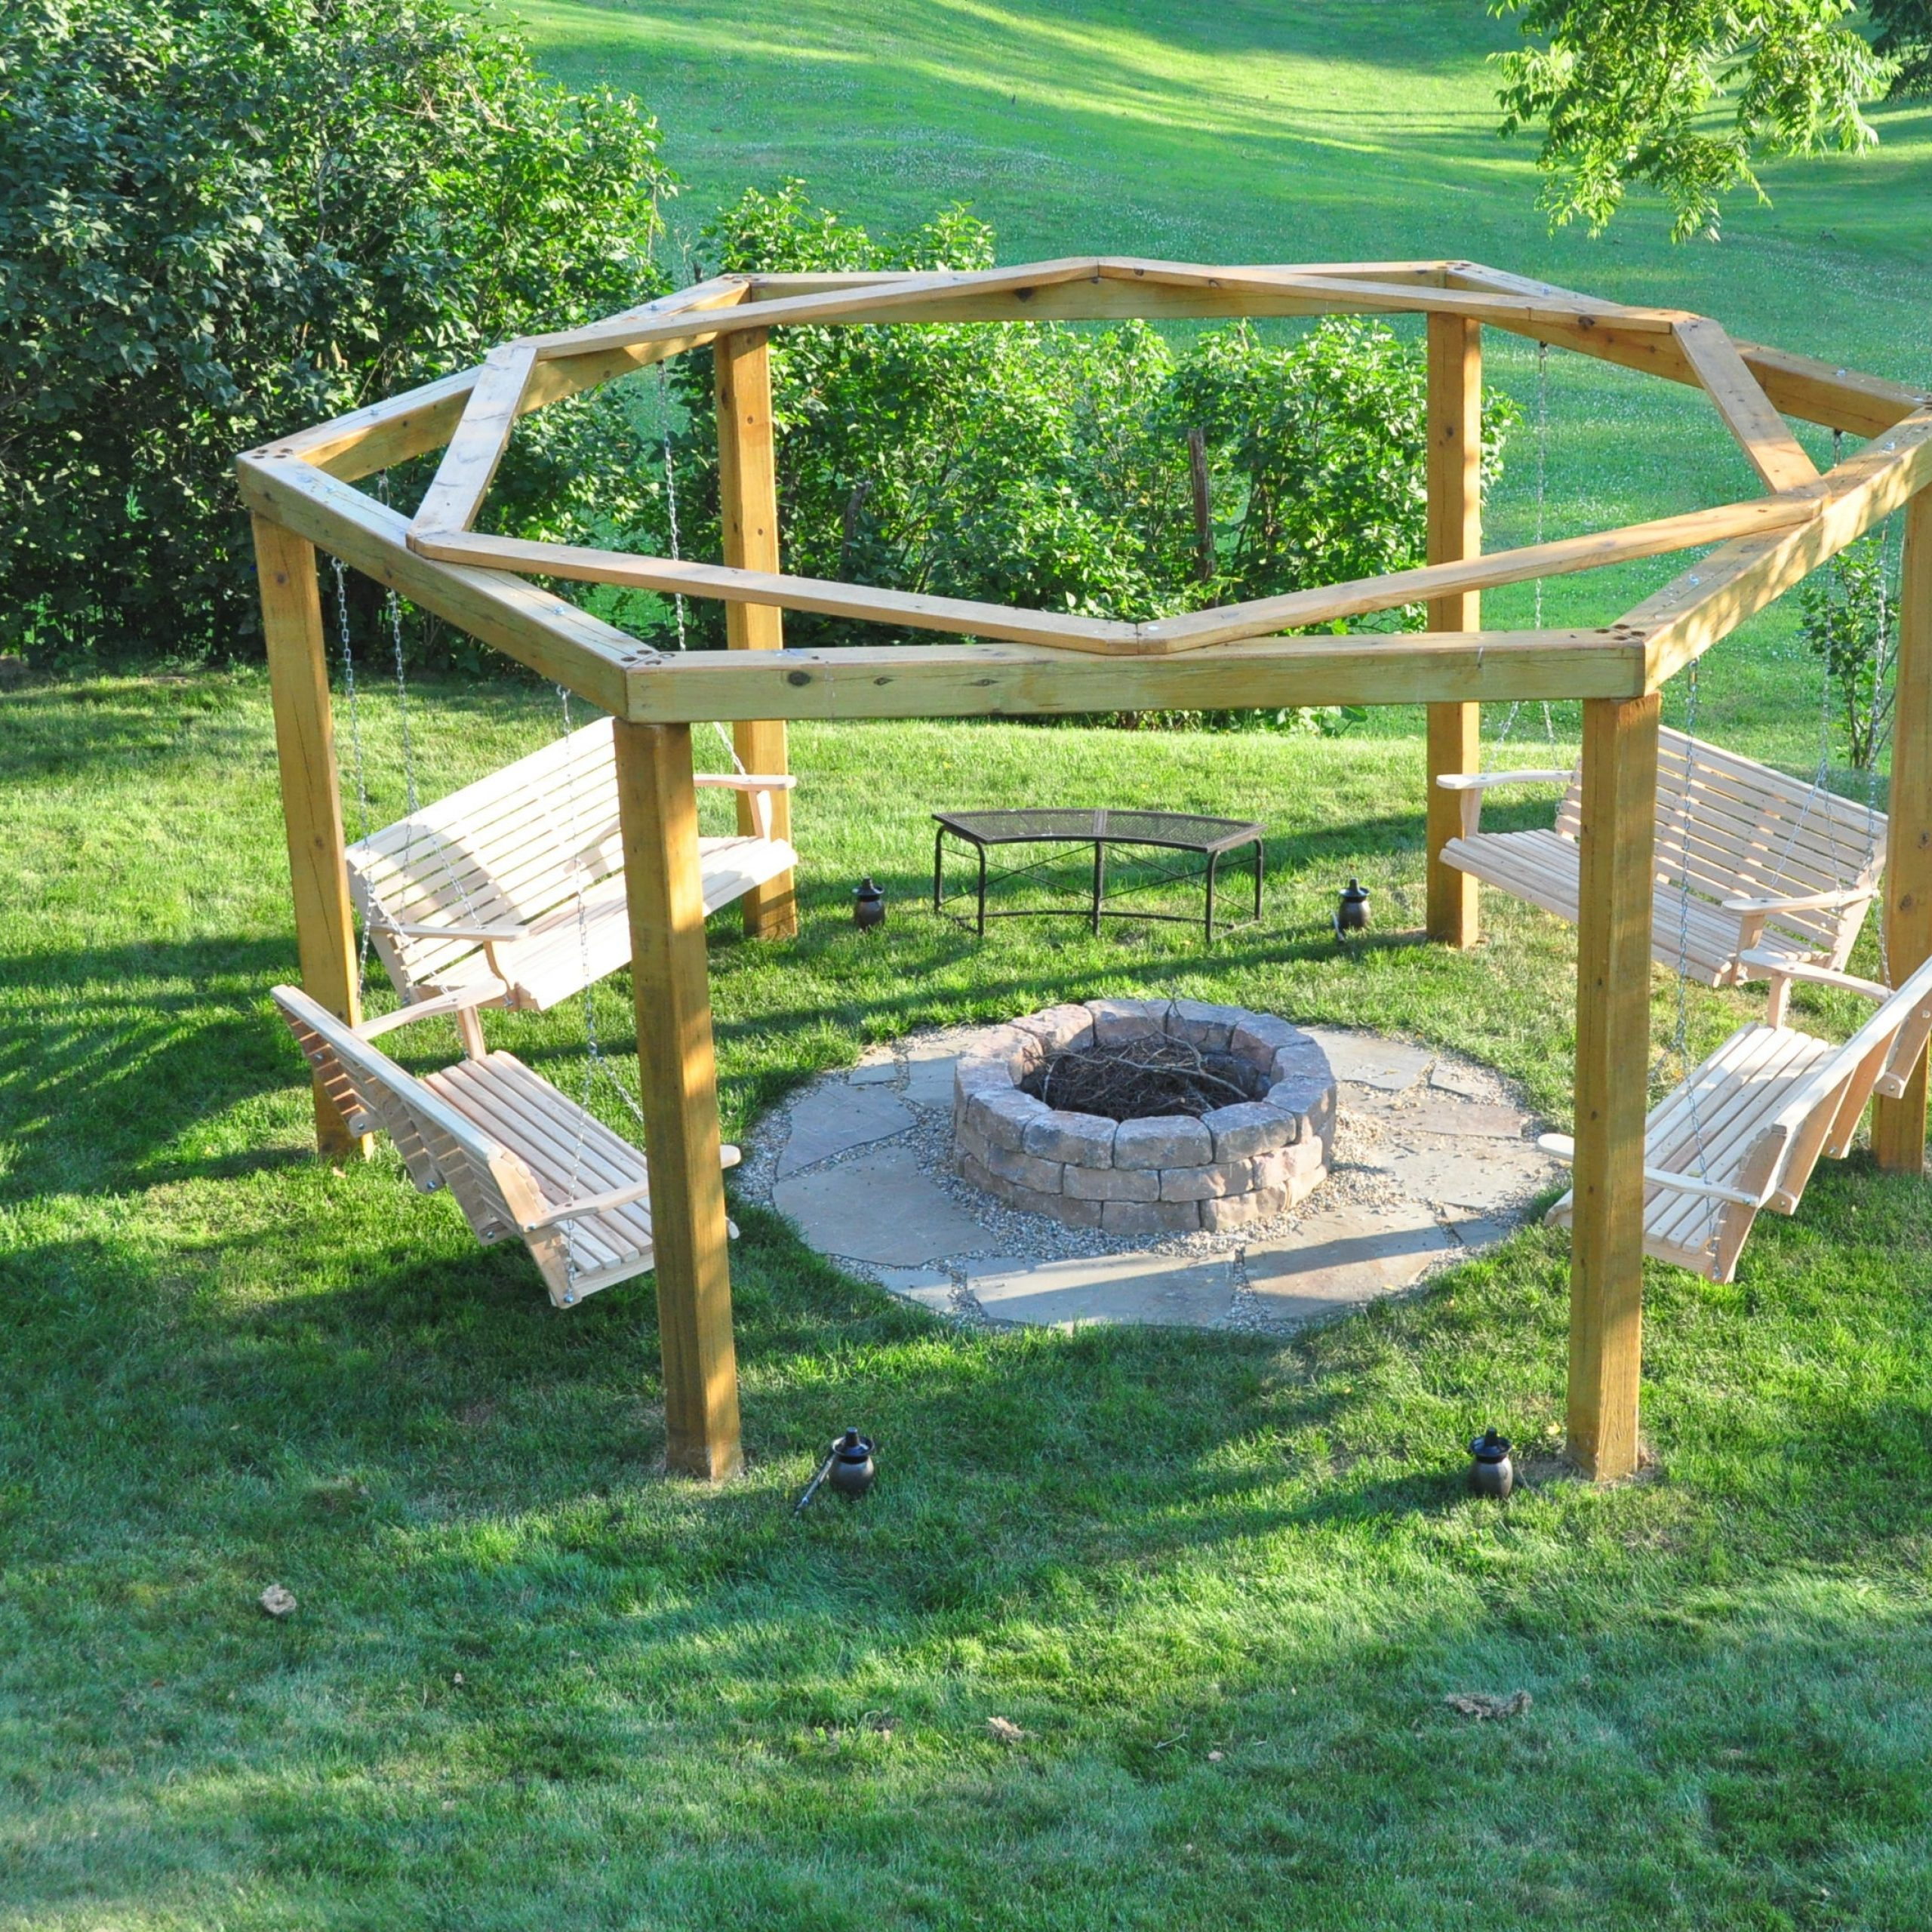 Porch Swing Fire Pit : 12 Steps (With Pictures) – Instructables Within Patio Hanging Porch Swings (View 11 of 25)